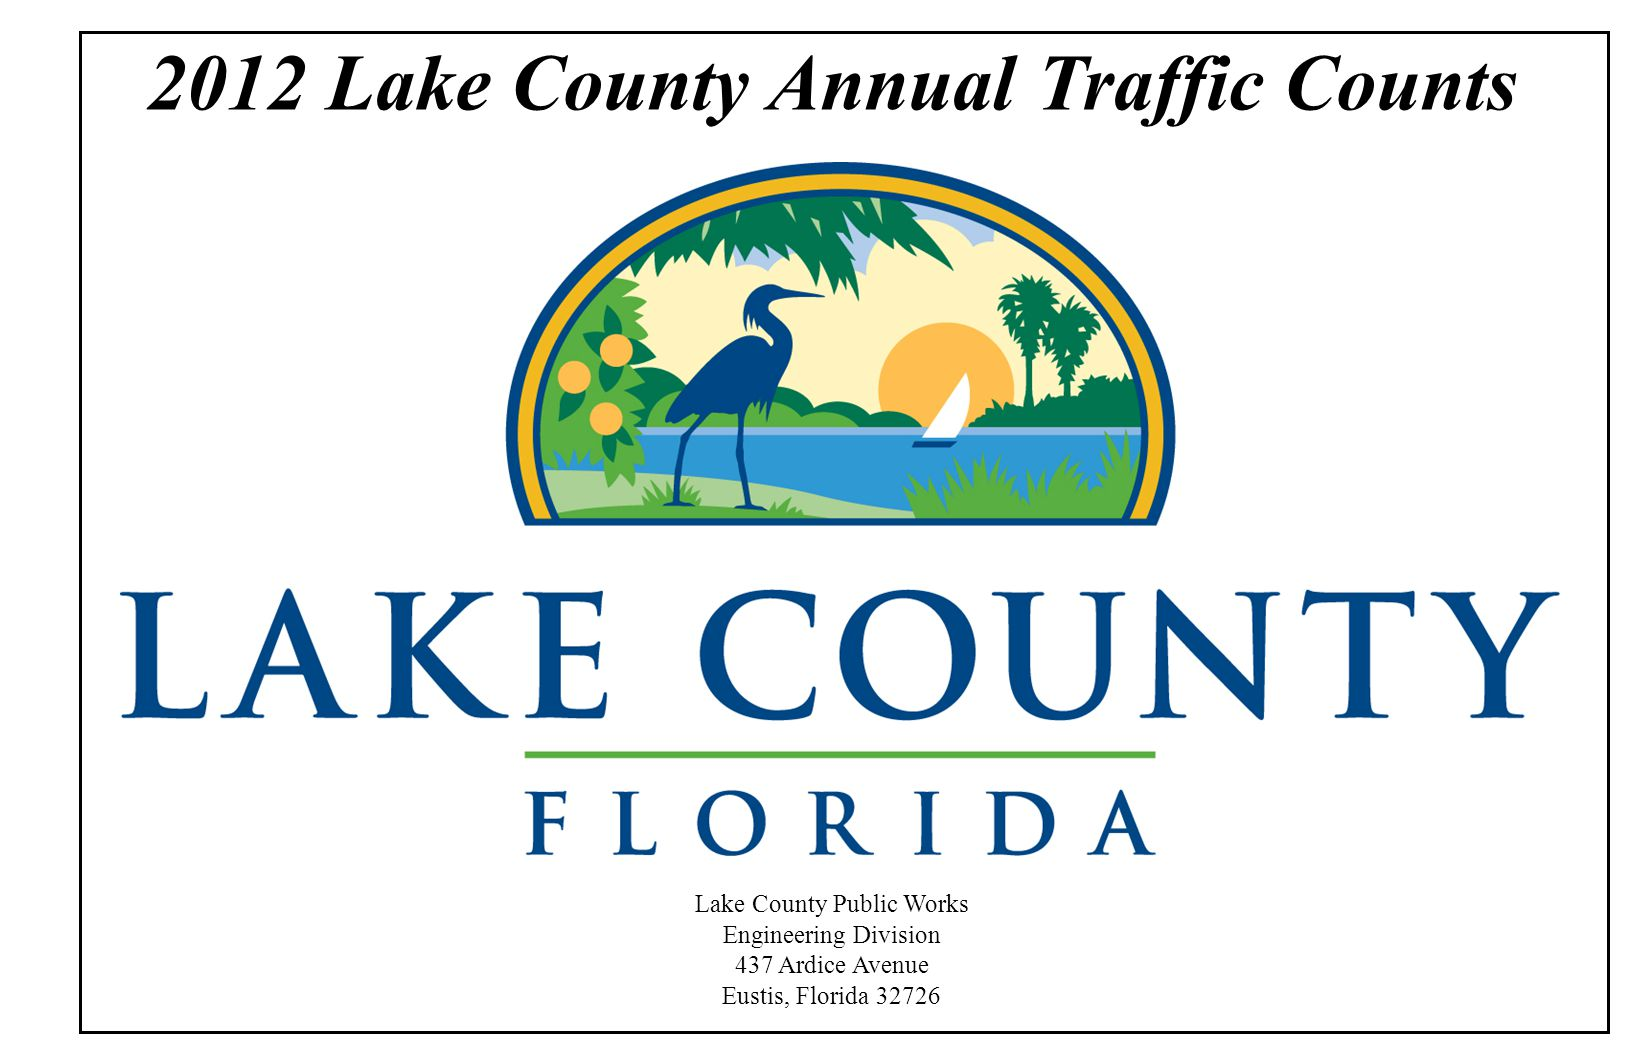 2012 Lake County Annual Traffic Counts Lake County Public Works Engineering Division 437 Ardice Avenue Eustis, Florida 32726